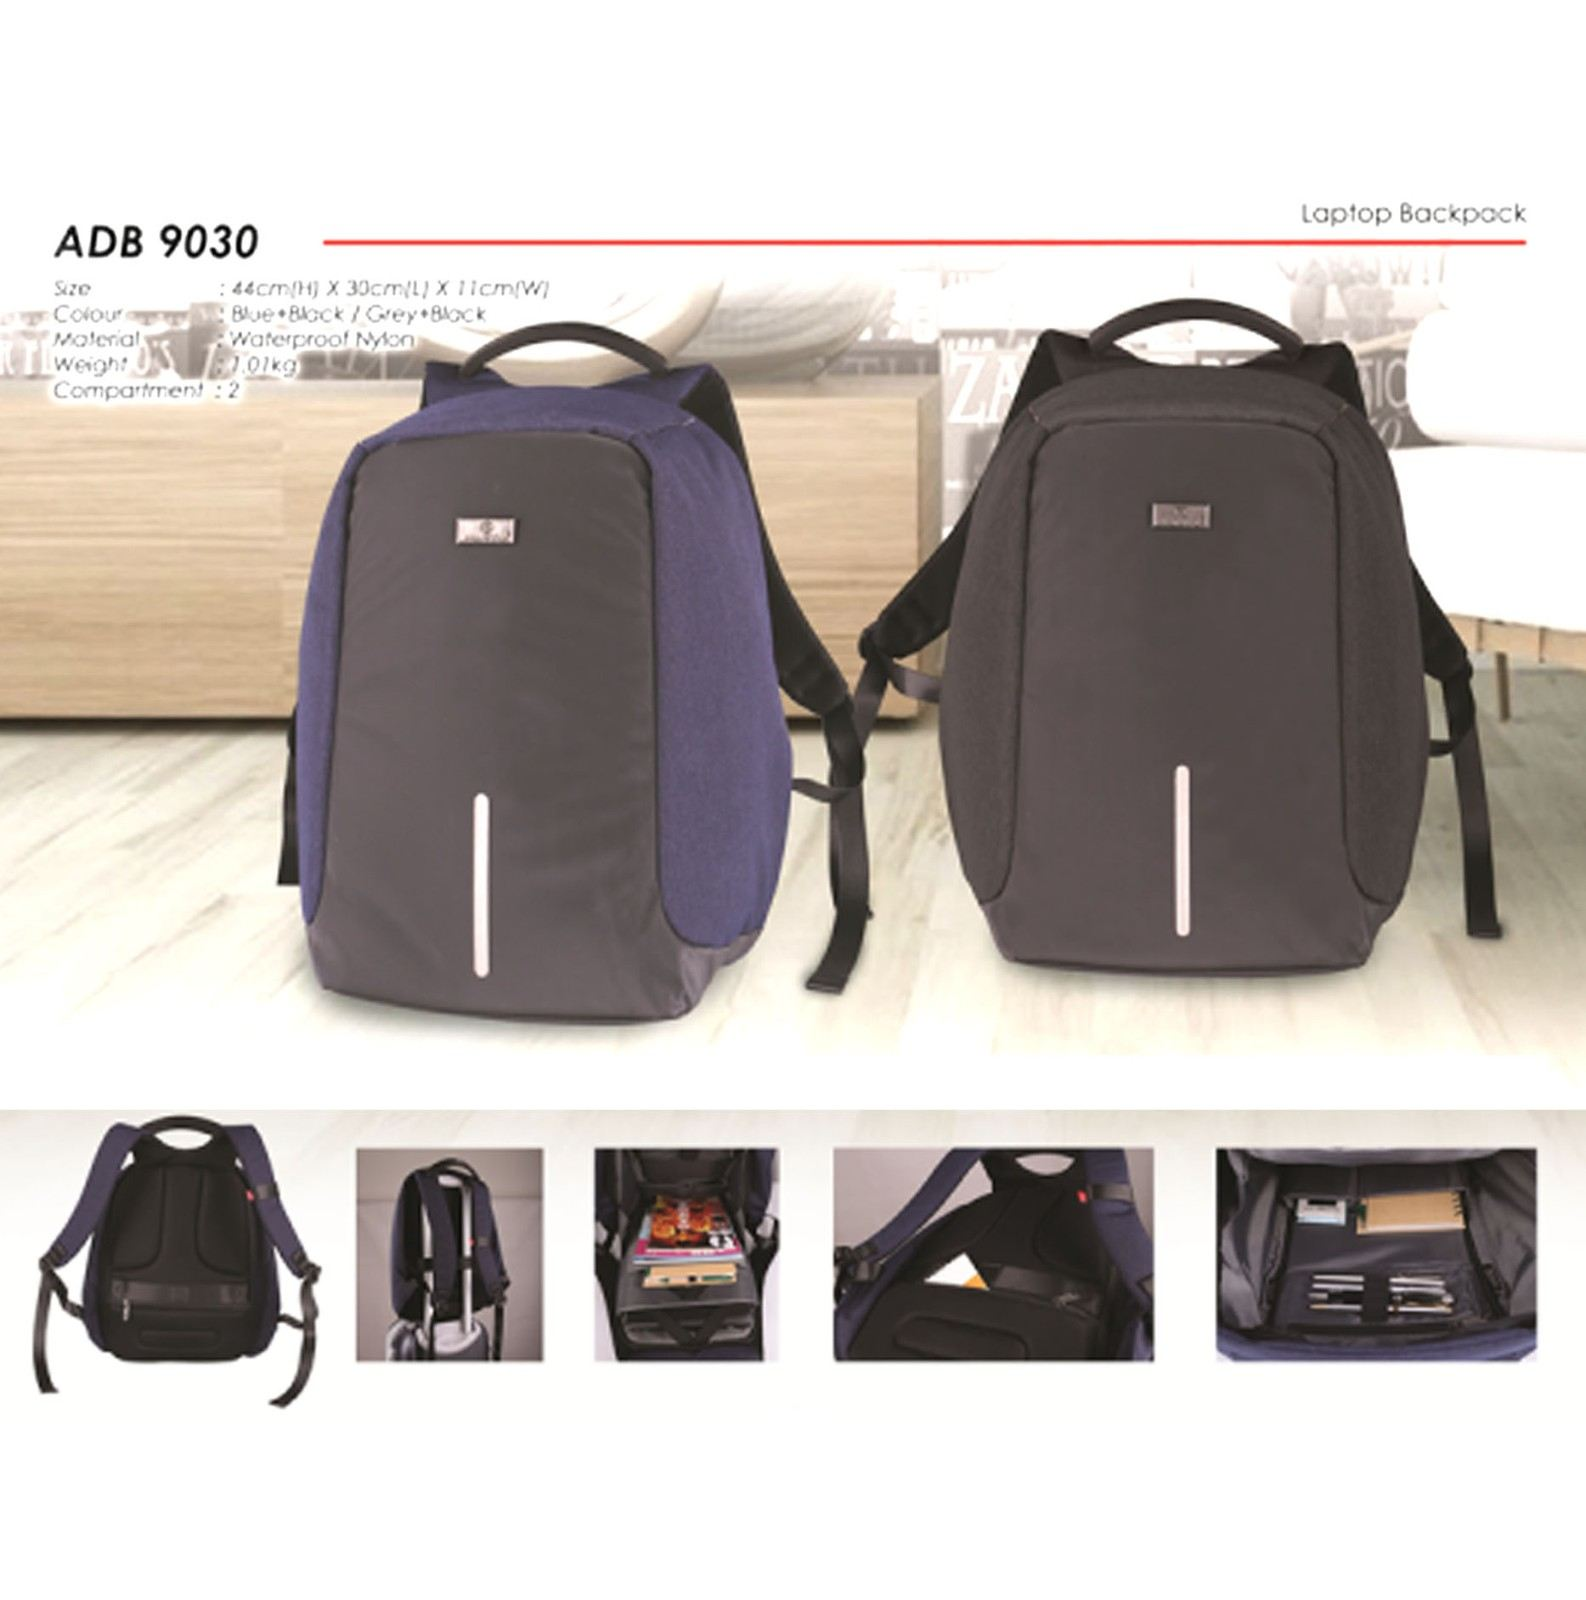 ADB9030 Laptop Backpack (A)